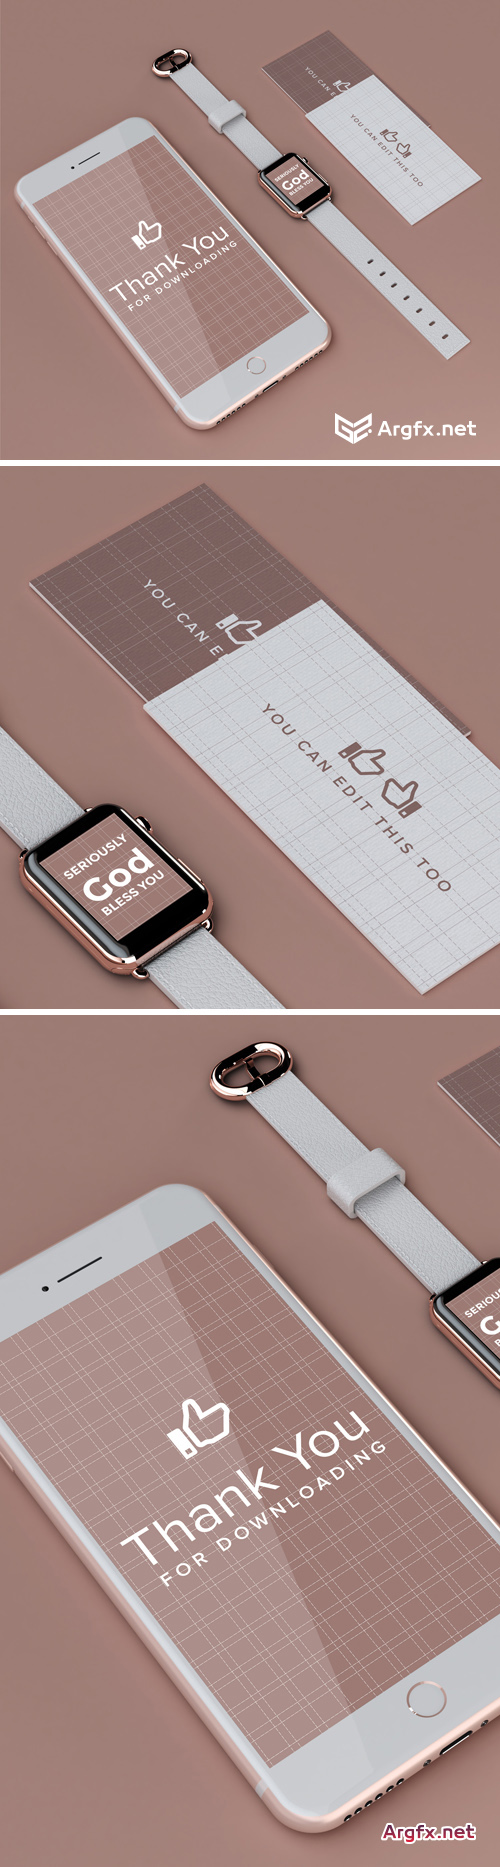 IPhone, Watch And Business Card Mockup